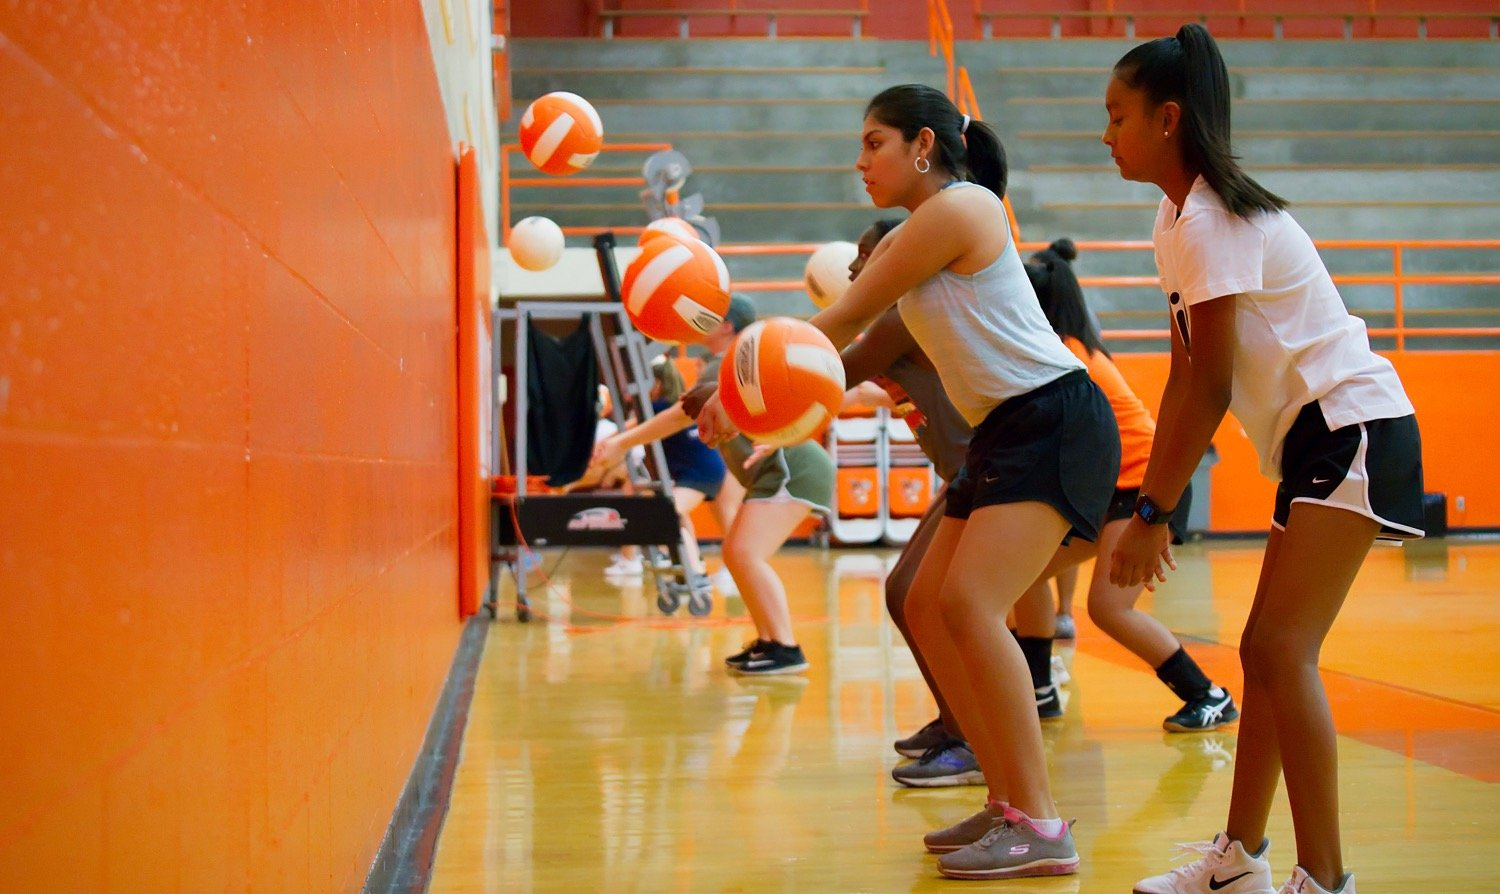 Volleyball drills started shortly after 9 a.m. Monday morning.